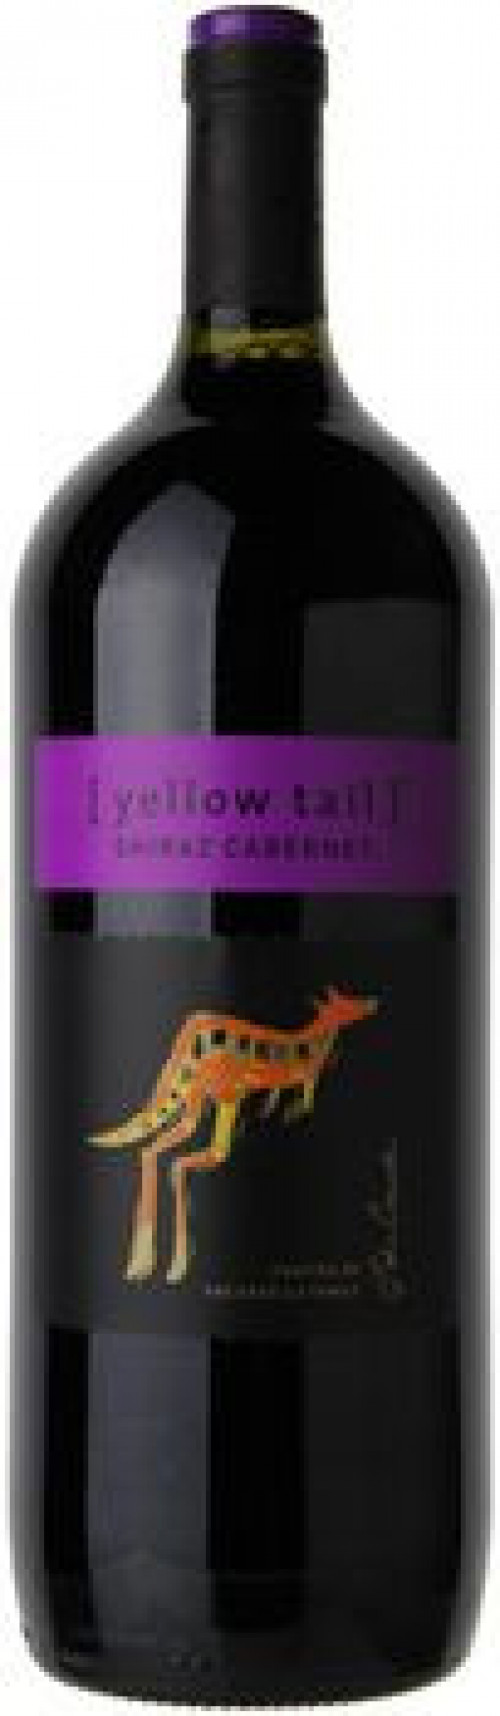 Yellow Tail Shiraz-Cabernet 1.5 Ltr